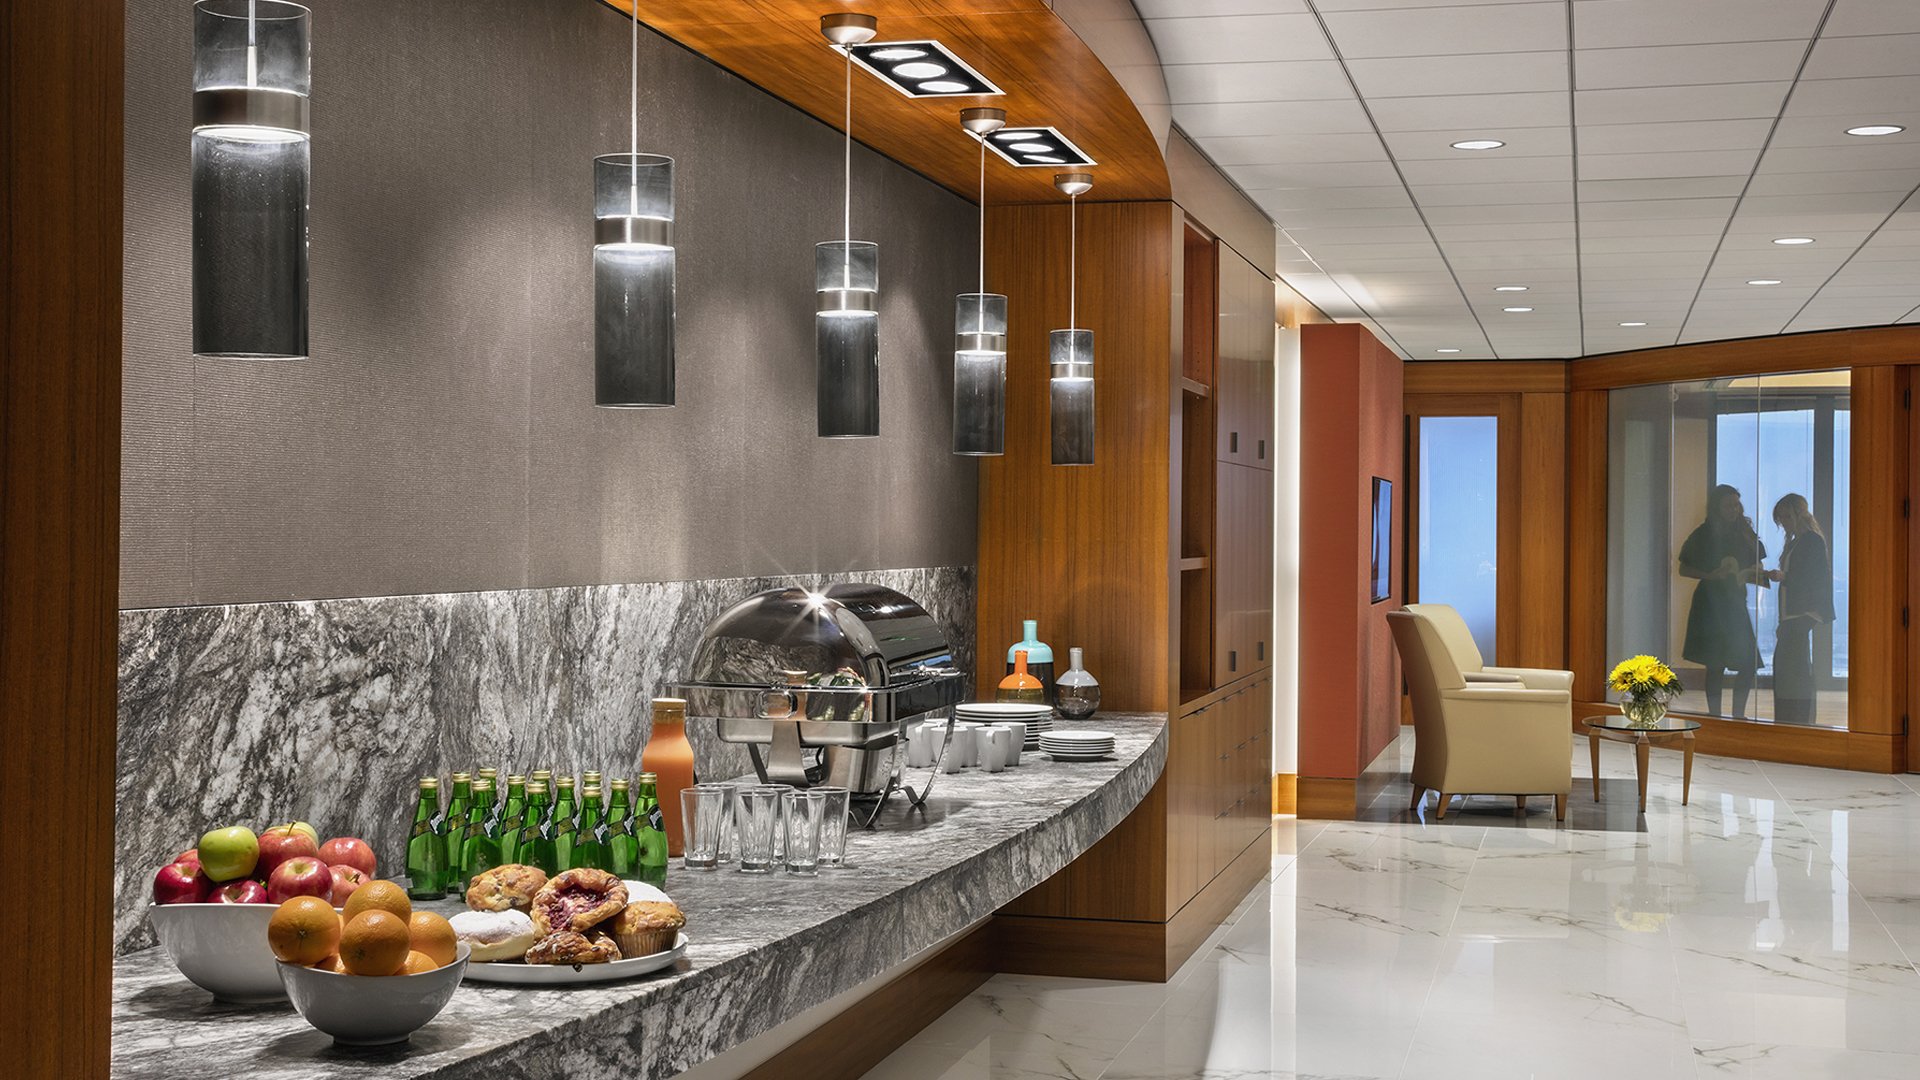 Corporate Law Interior Design Mayer Brown Houston Refreshment Hospitality Self-Service Bar Entertainment Space